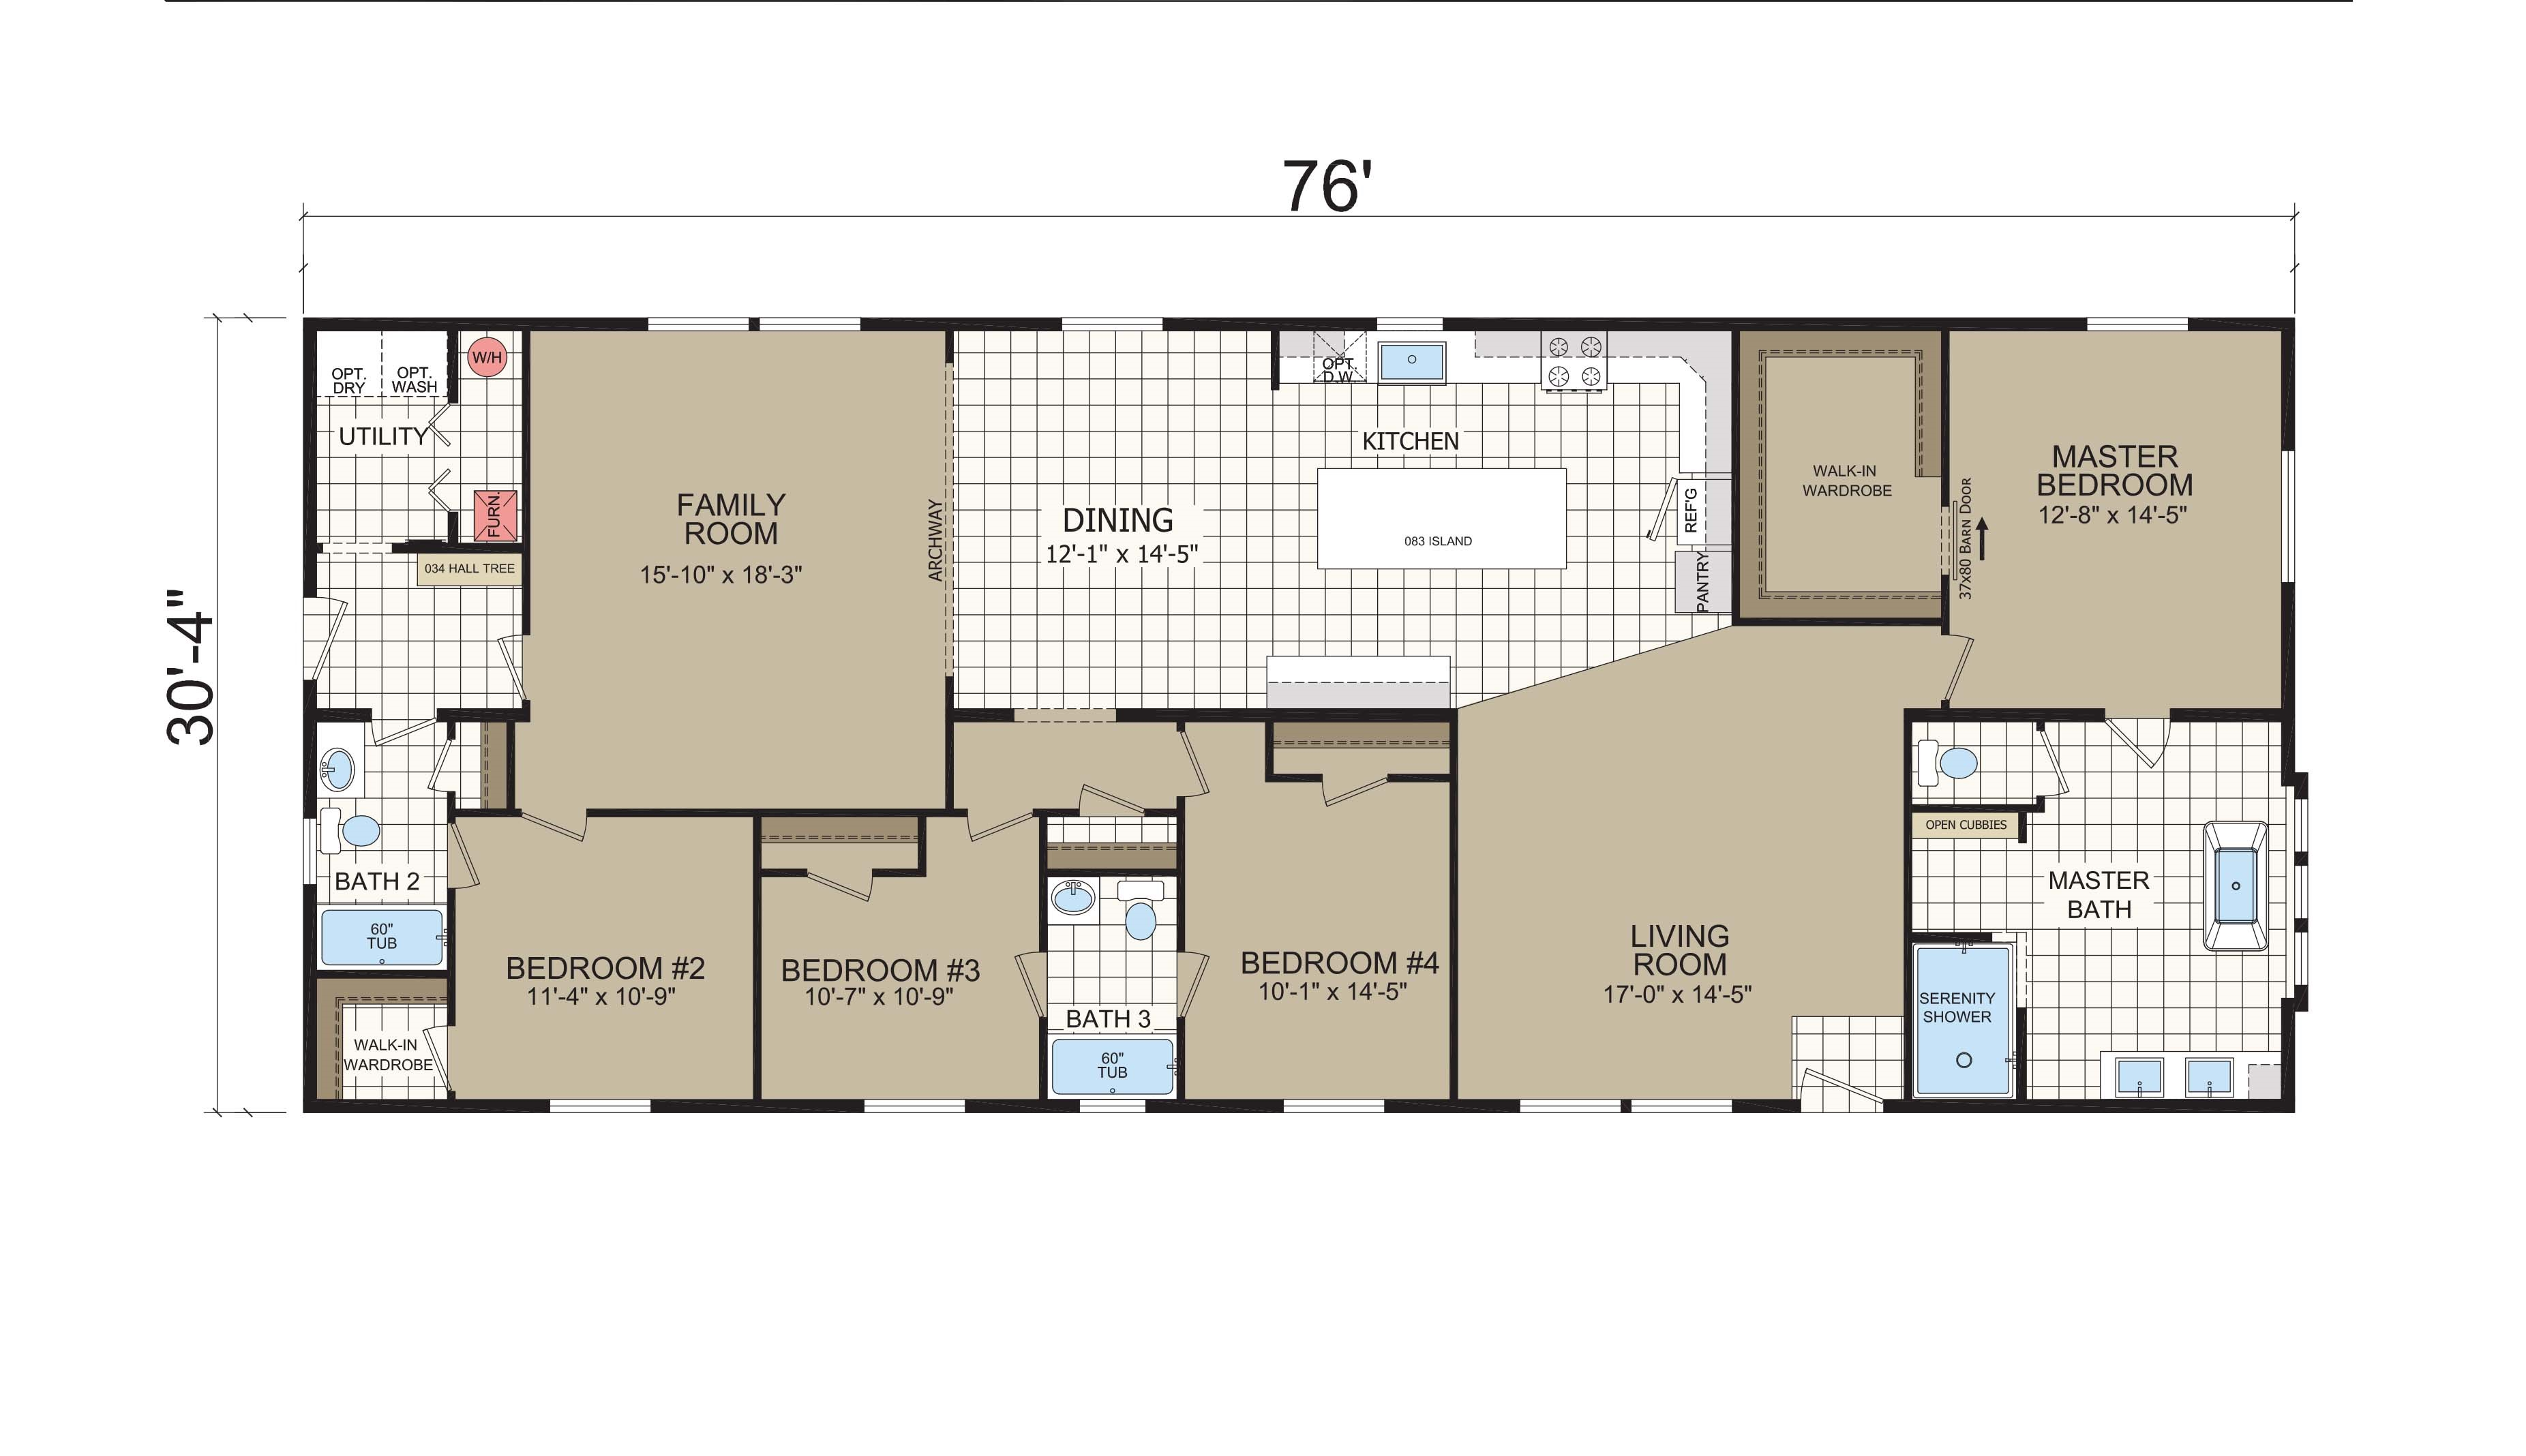 floorplan image for unit 391